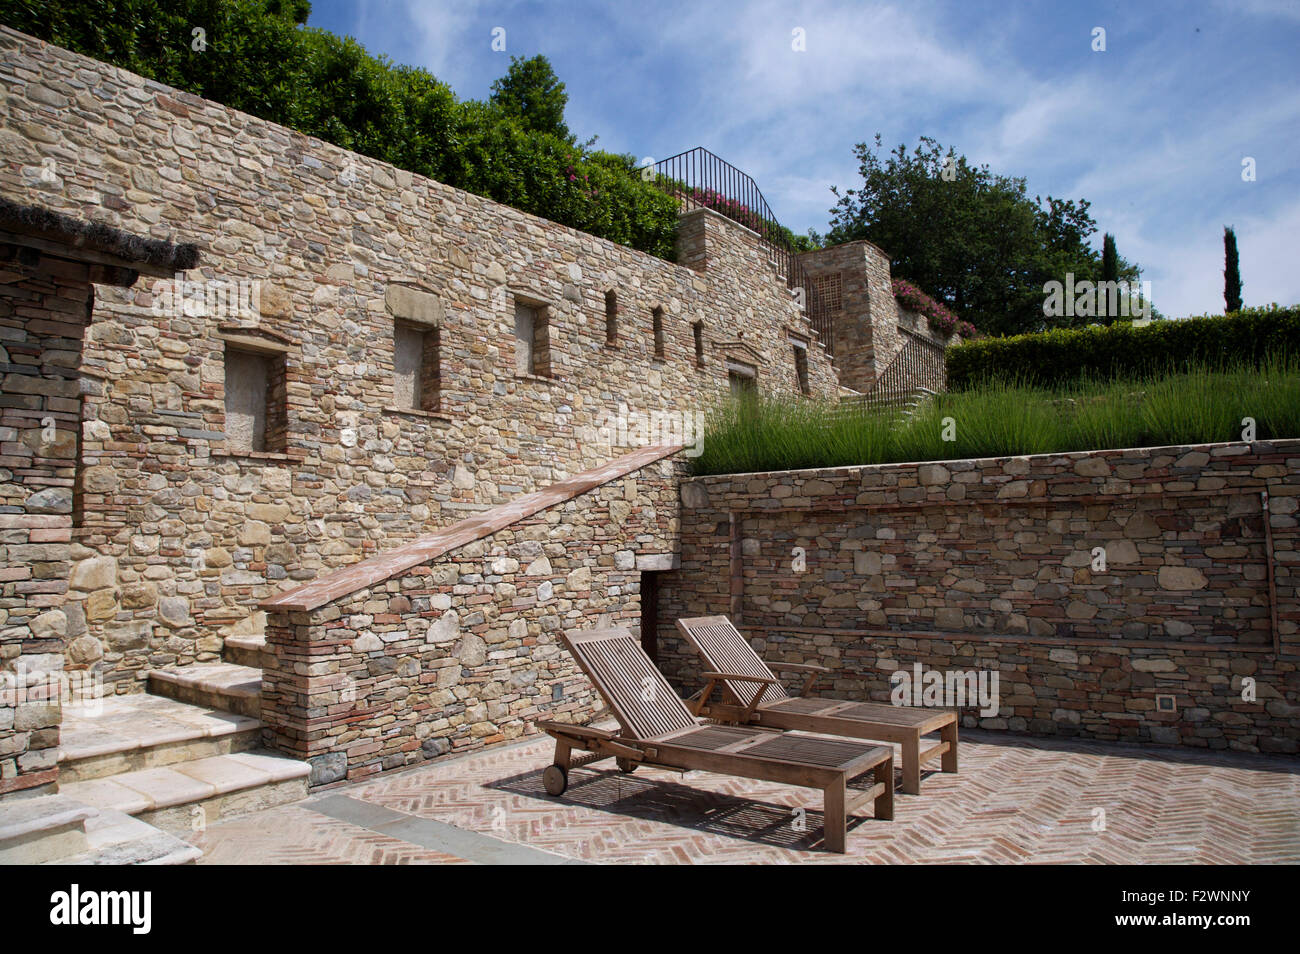 Italian country gardens - Stock Photo Wooden Loungers On Sunken Patio With Stone Steps And Walls In Italian Country Garden